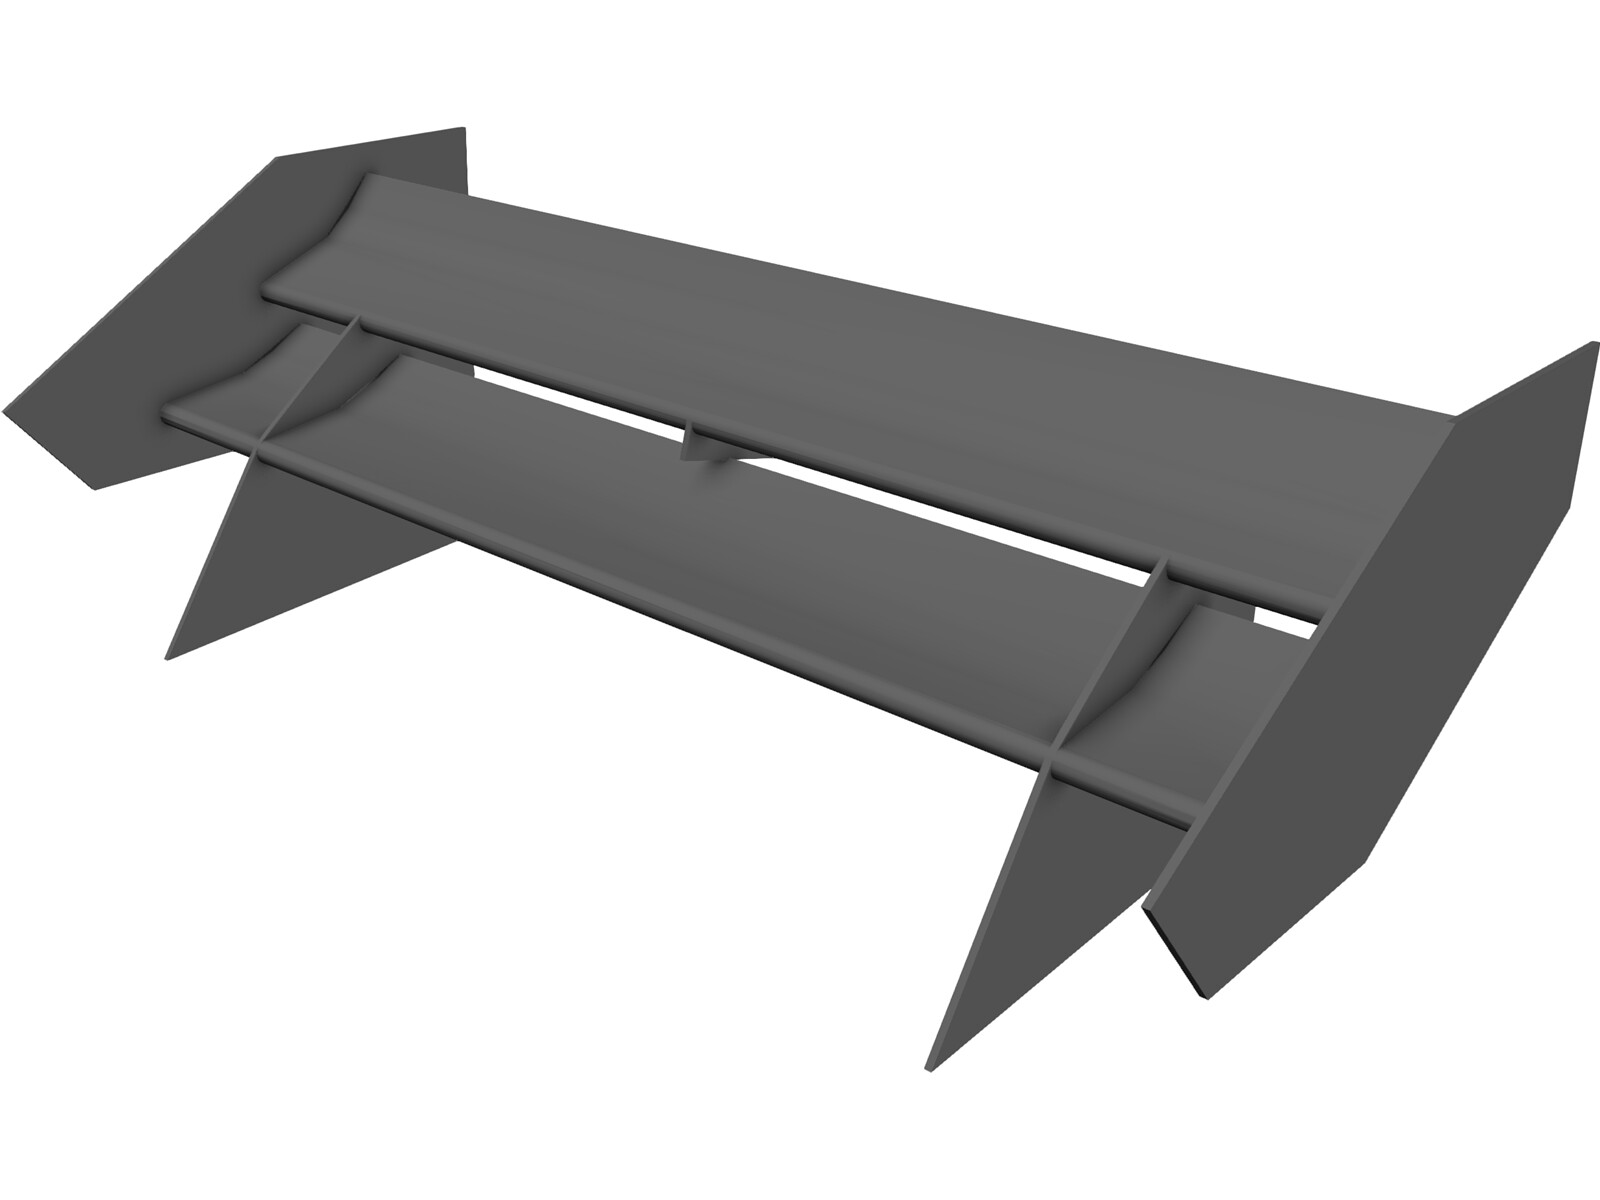 Formula Student Rear Wing 3D CAD Model